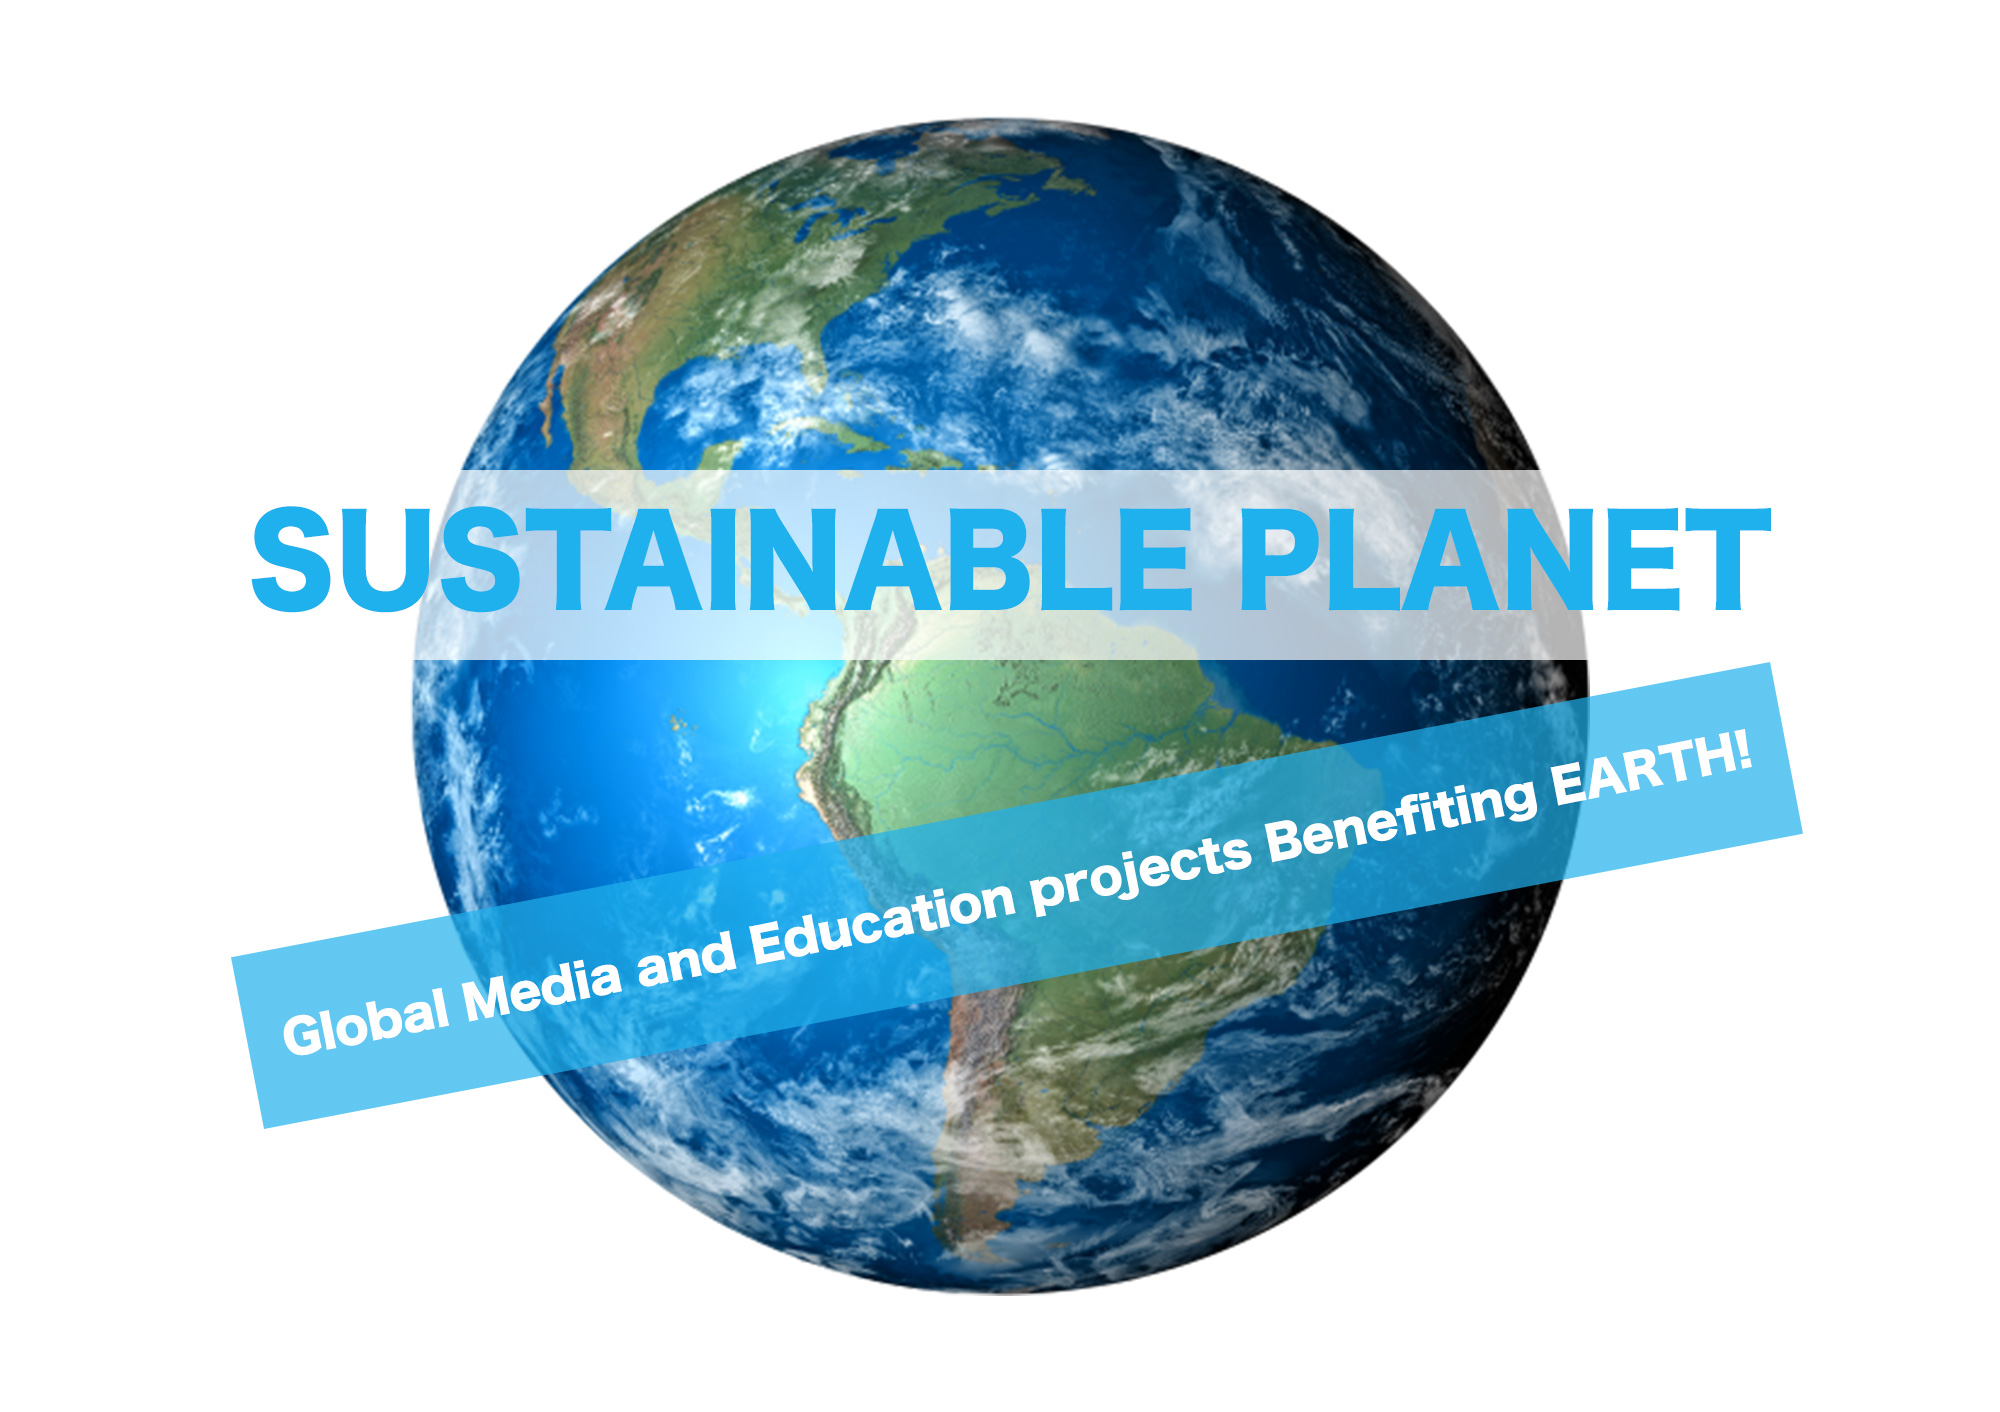 Sustainable Planet